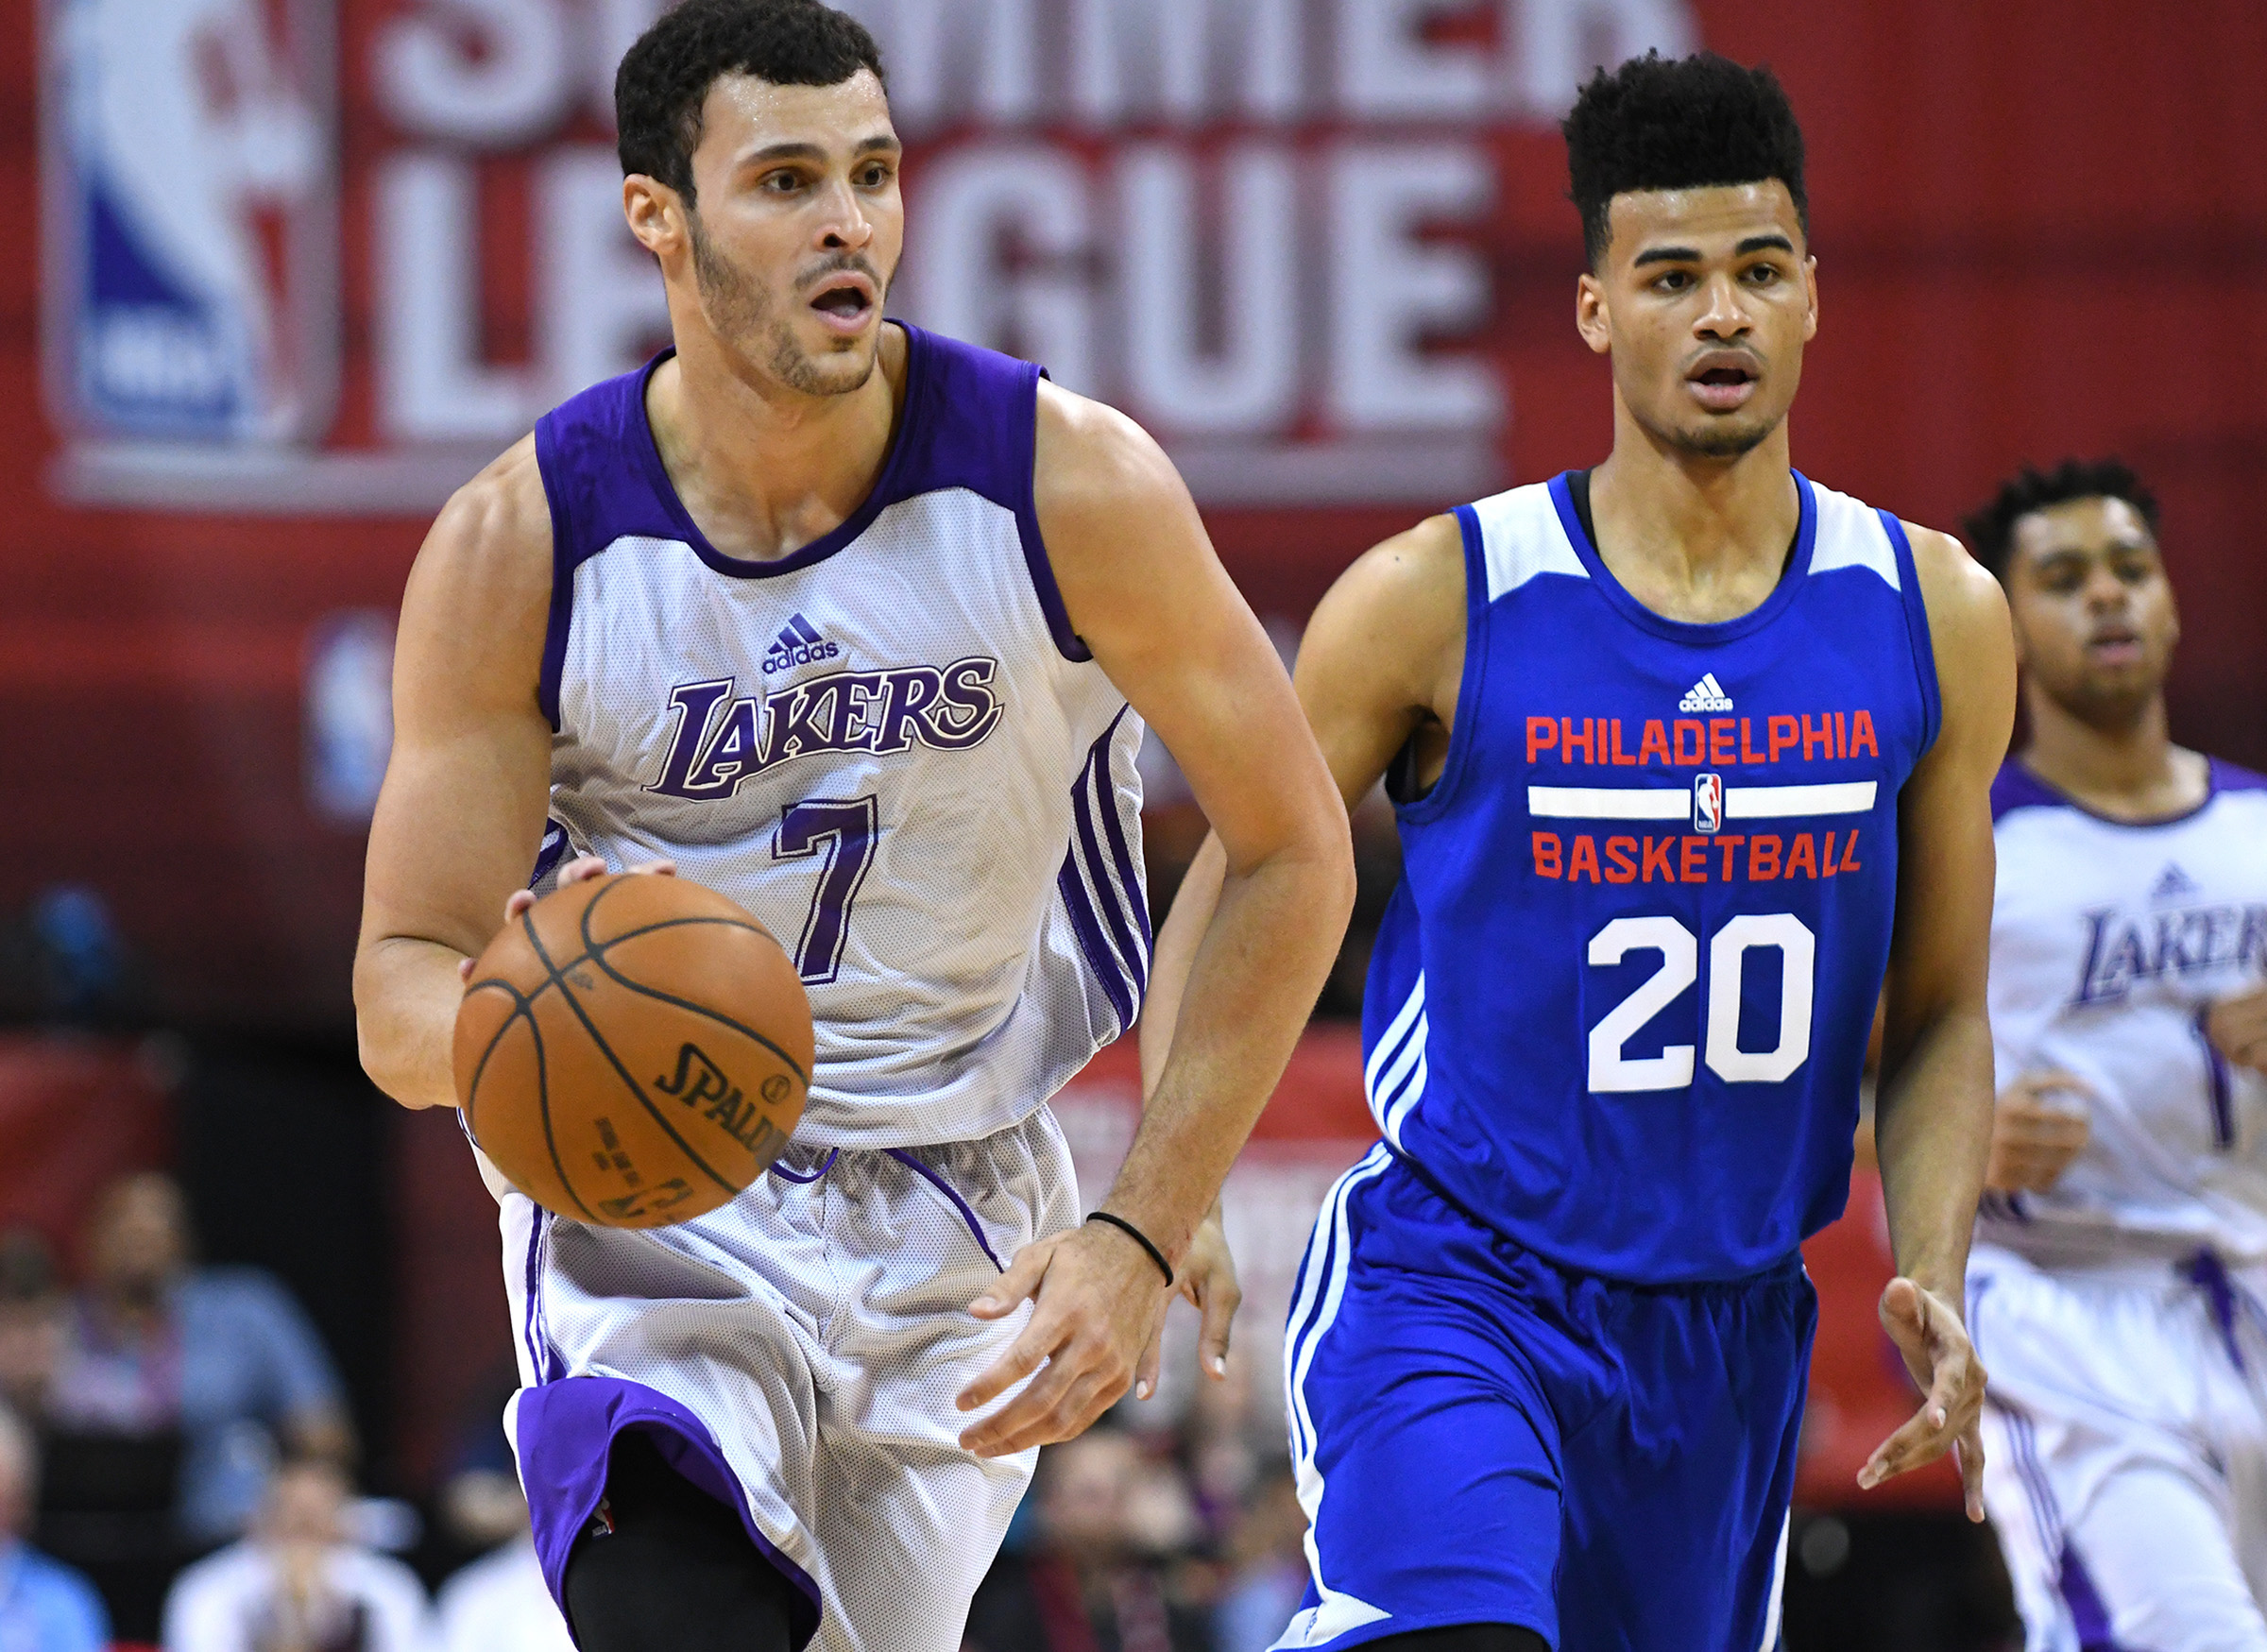 Jul 9, 2016; Las Vegas, NV, USA; Los Angeles Lakers forward Larry Nance Jr (7) dribbles the ball during an NBA Summer League game against the Philadelphia 76ers at Thomas & Mack Center. Mandatory Credit: Stephen R. Sylvanie-USA TODAY Sports